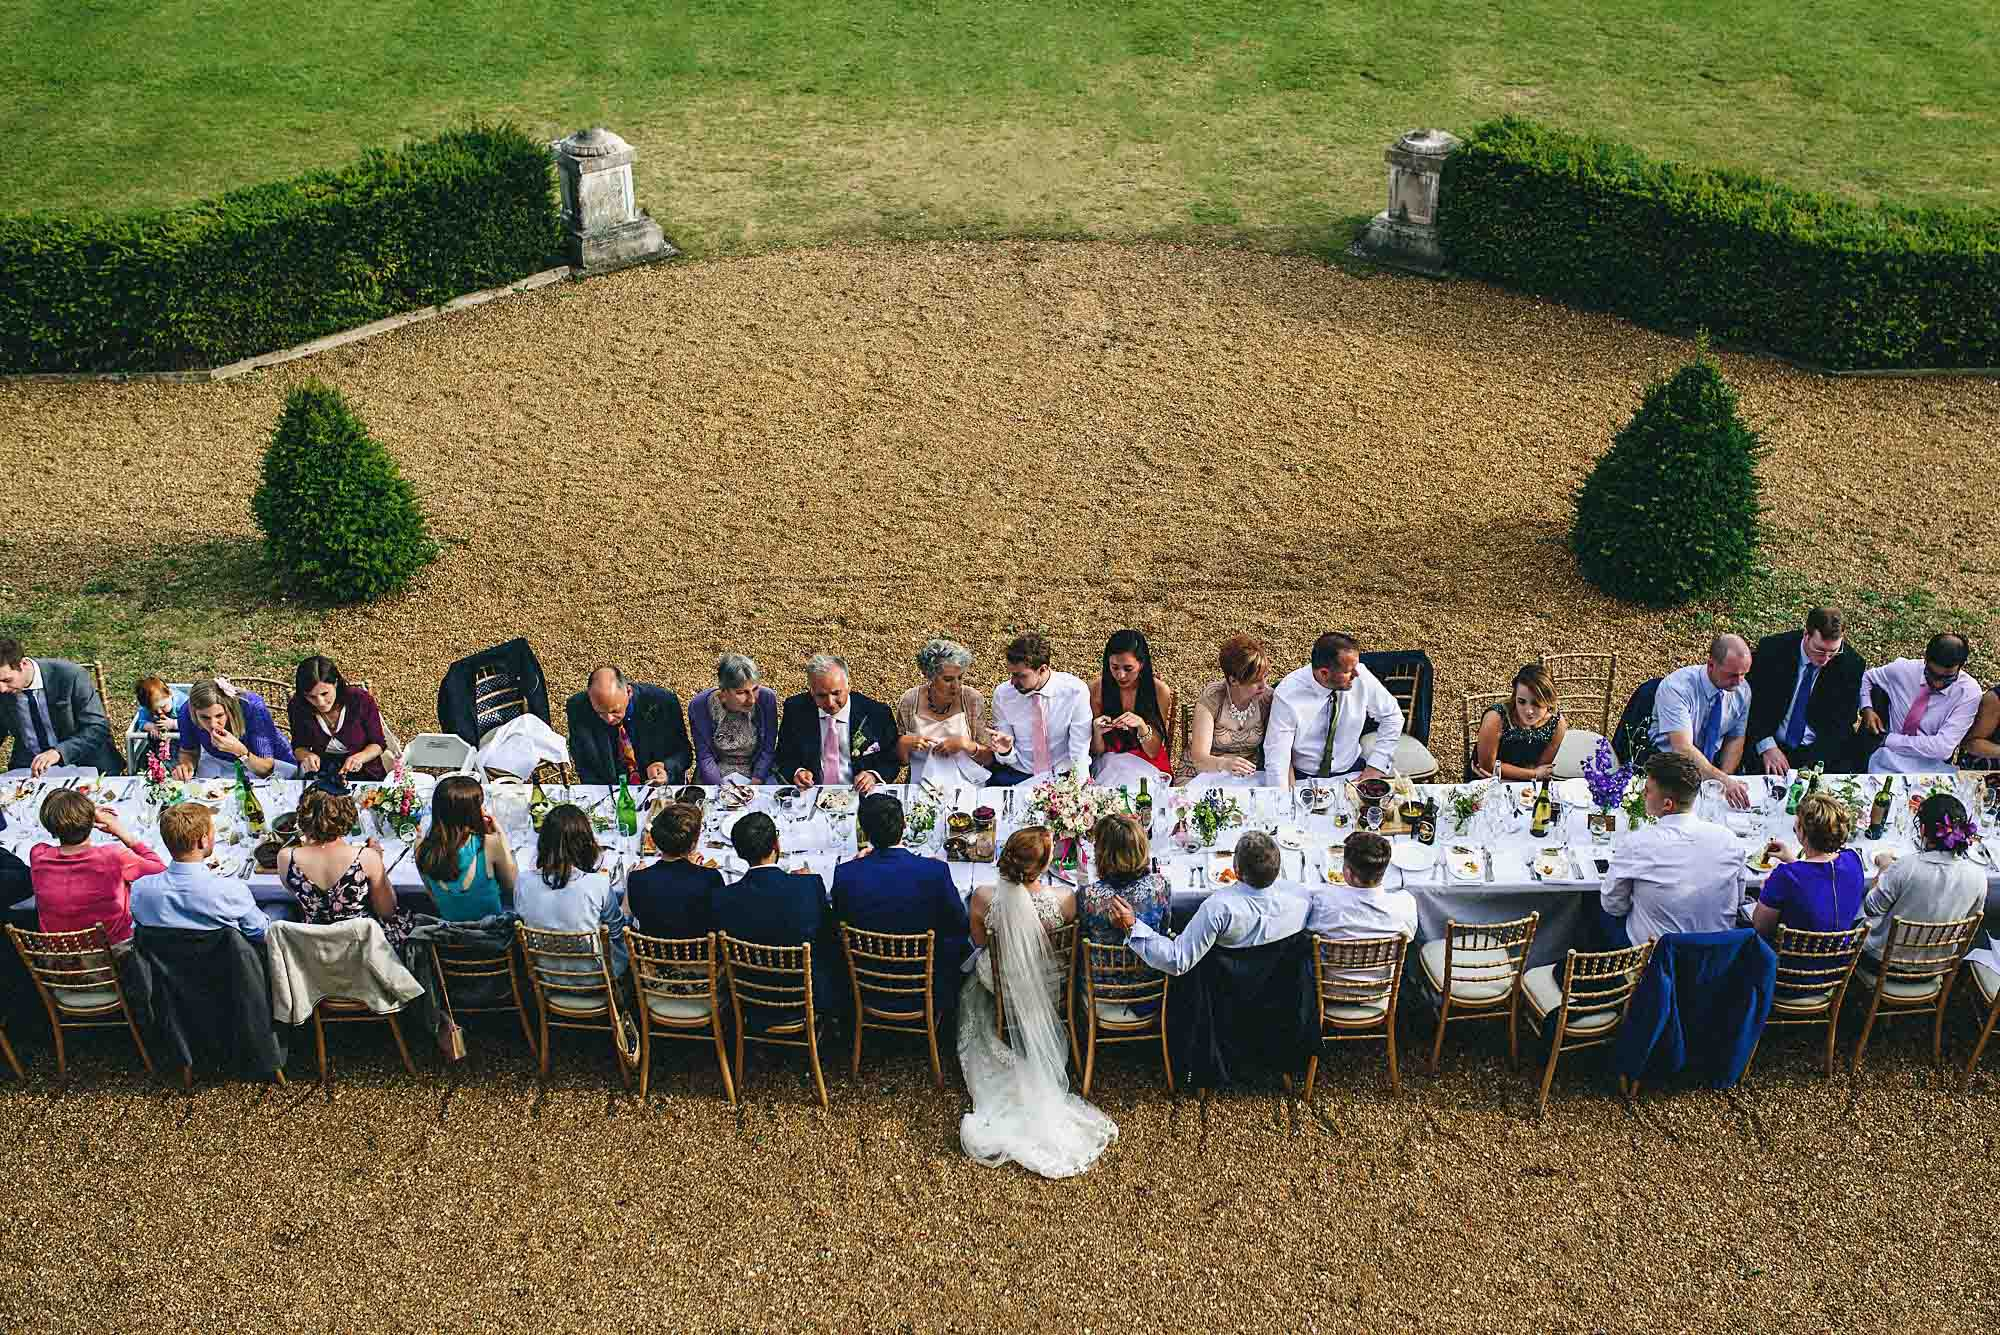 Narborough Hall Gardens wedding photography 40 Completed